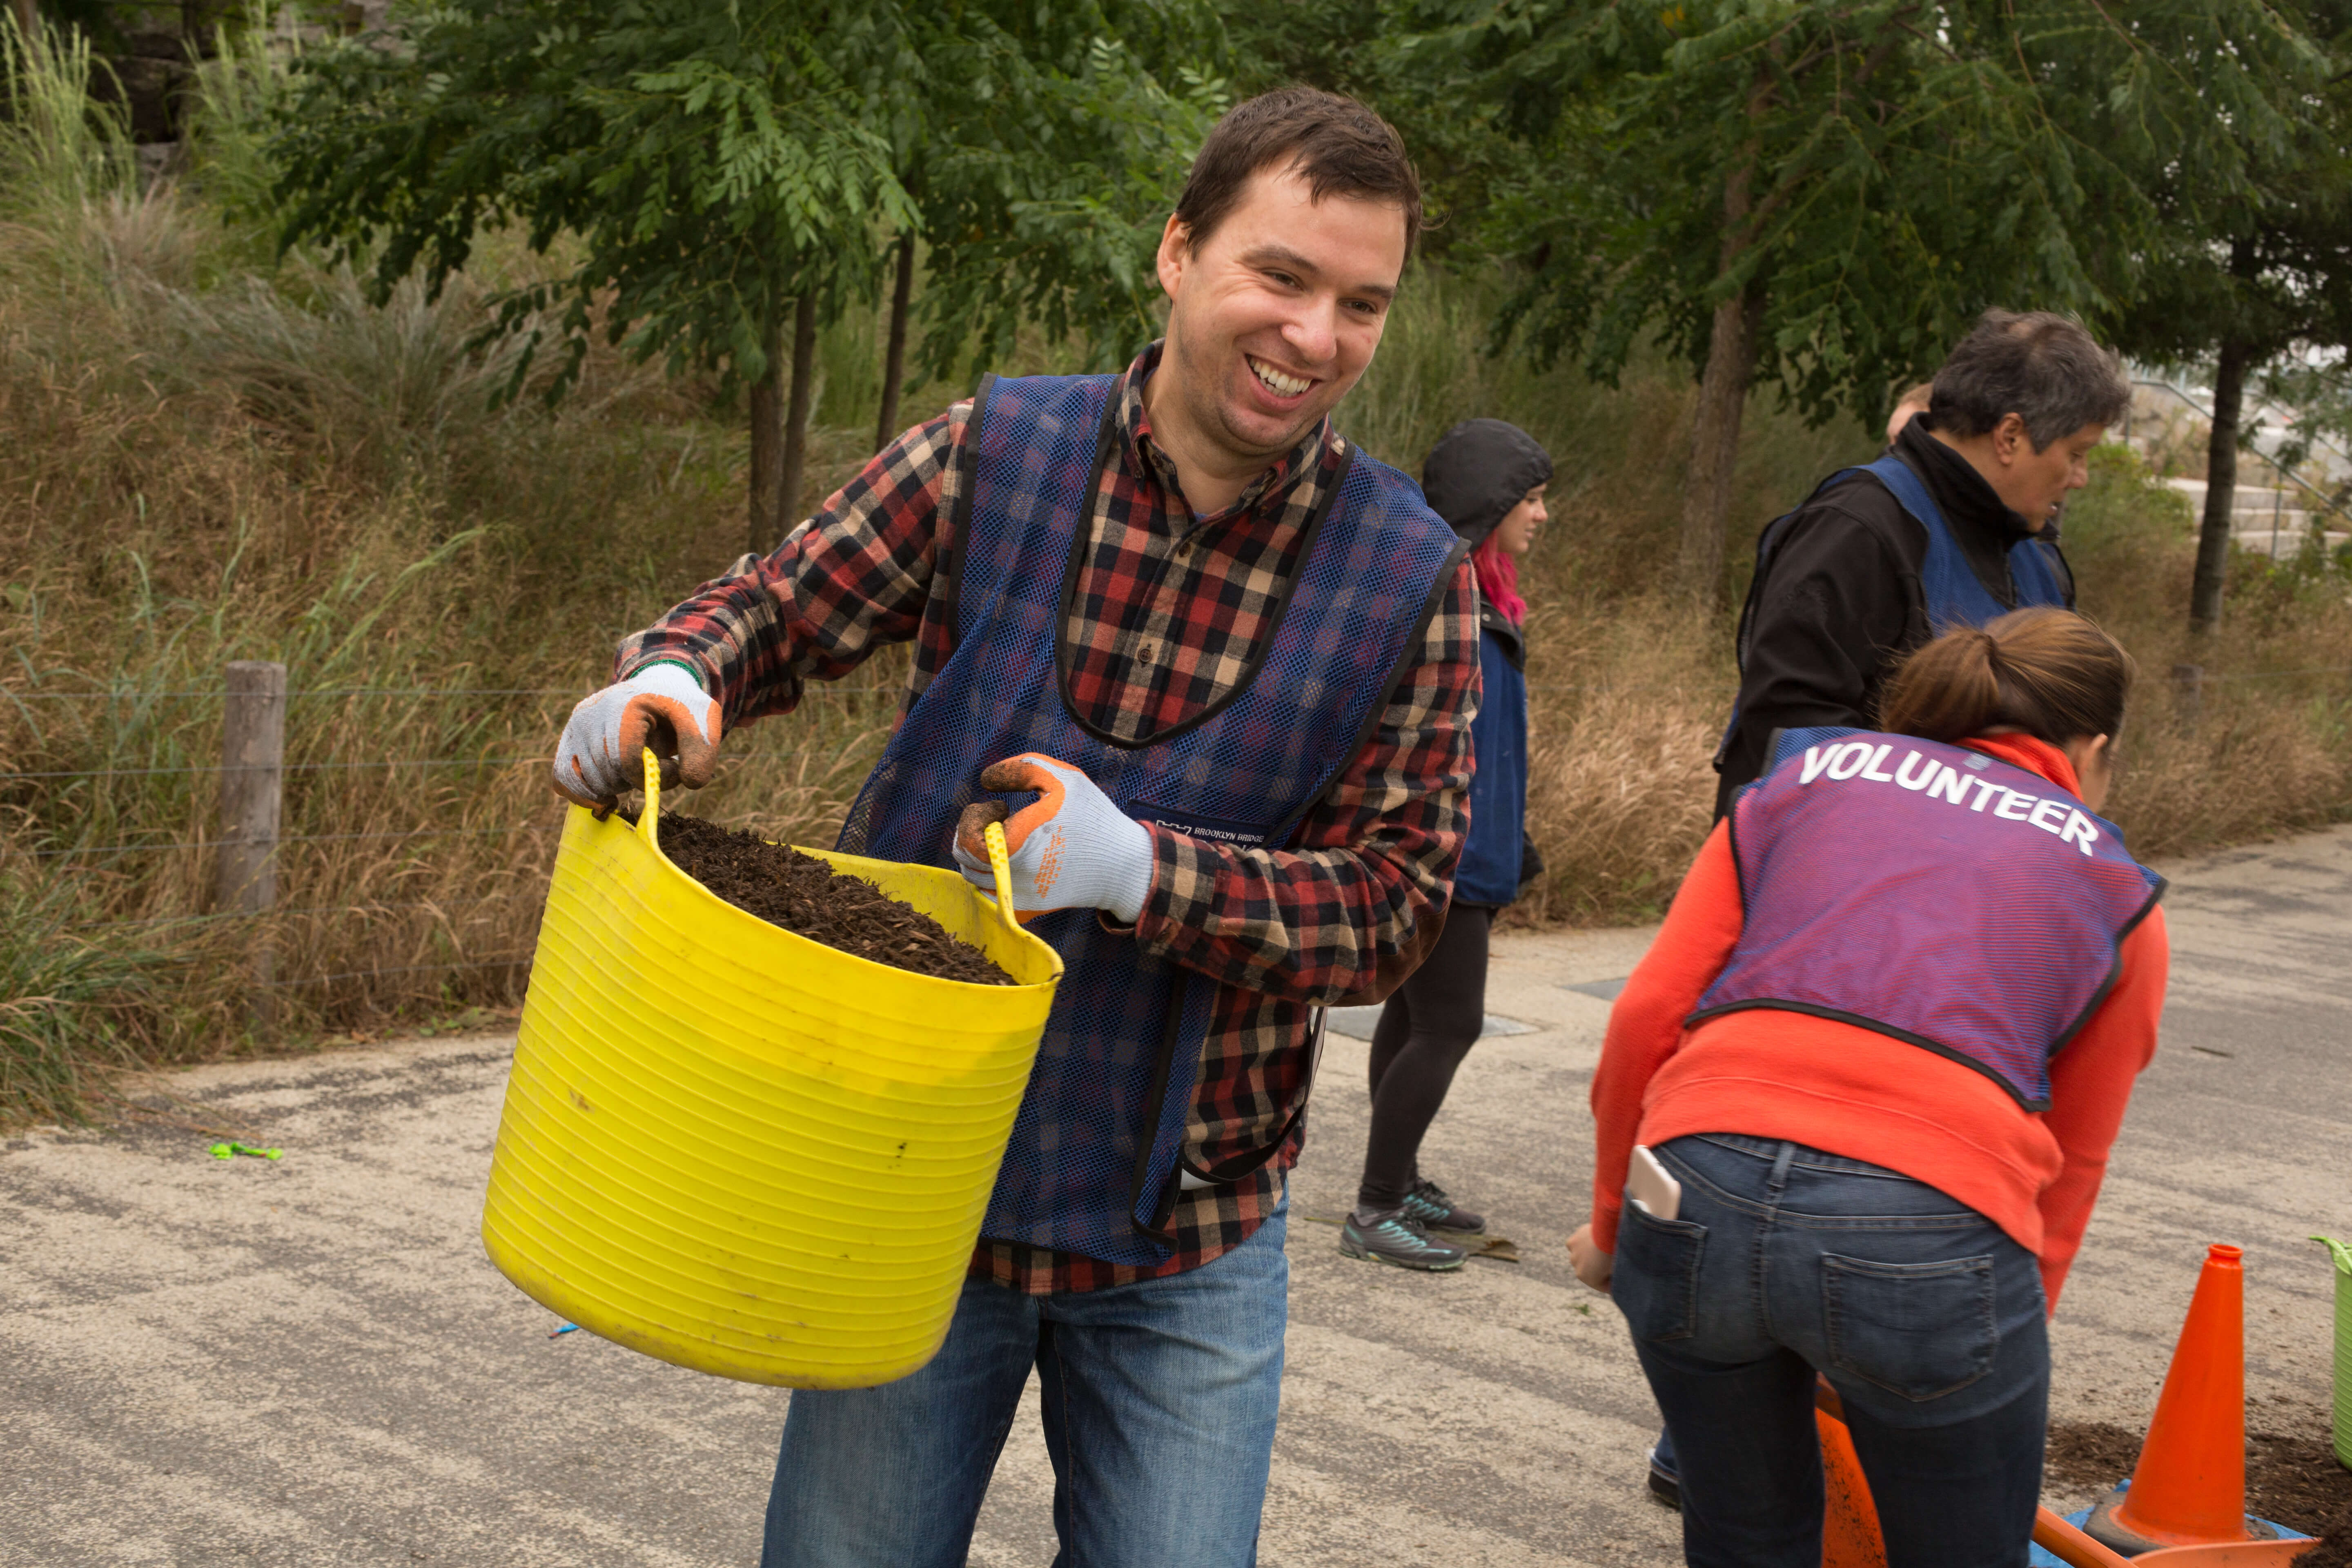 Man carrying bucket of mulch and smiling